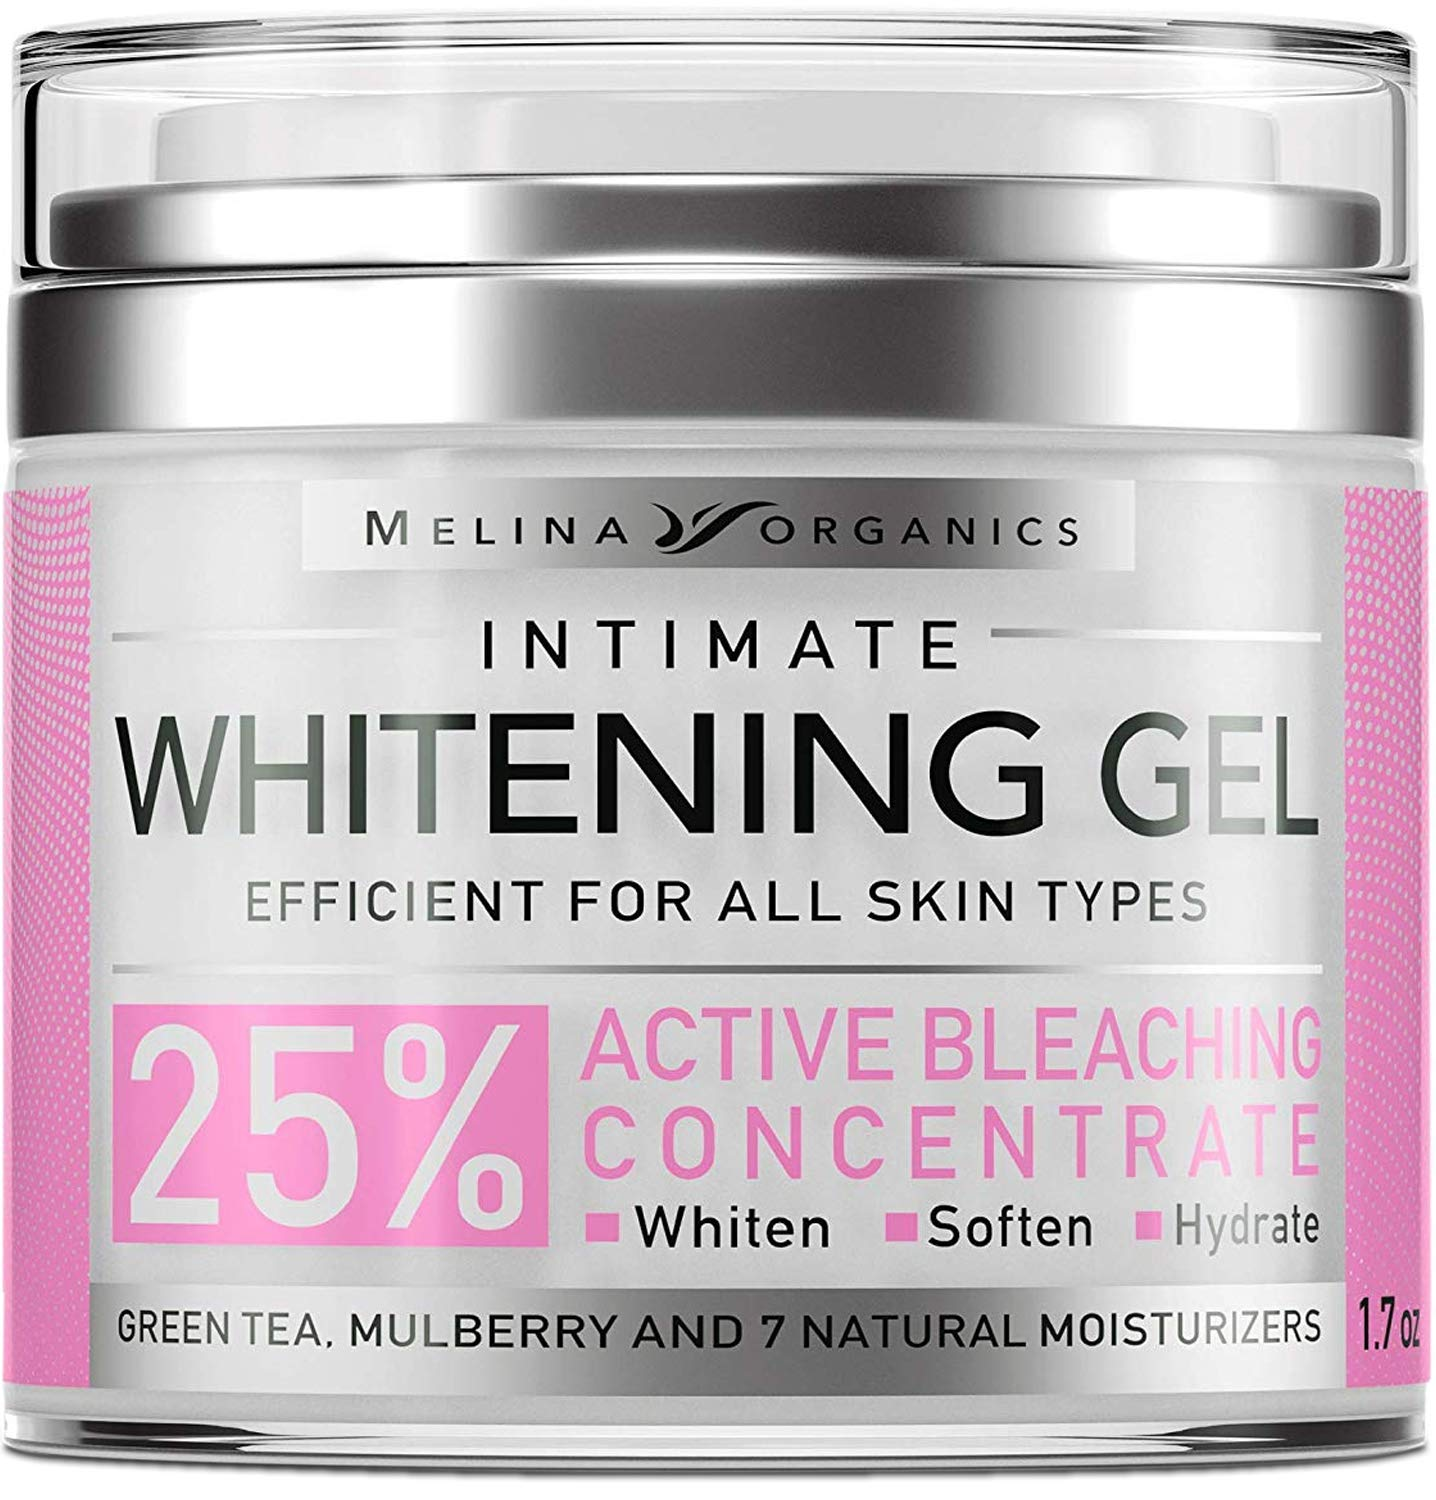 Whitening Cream for Intimate Areas - Made in USA - Potent Bleaching Cream with Arbutin (Glycosylated Hydroquinone), Hyaluronic Acid & Aloe Vera - Underarm Whitening and Intimate Bleaching - 1.7 Oz by Melina Organics